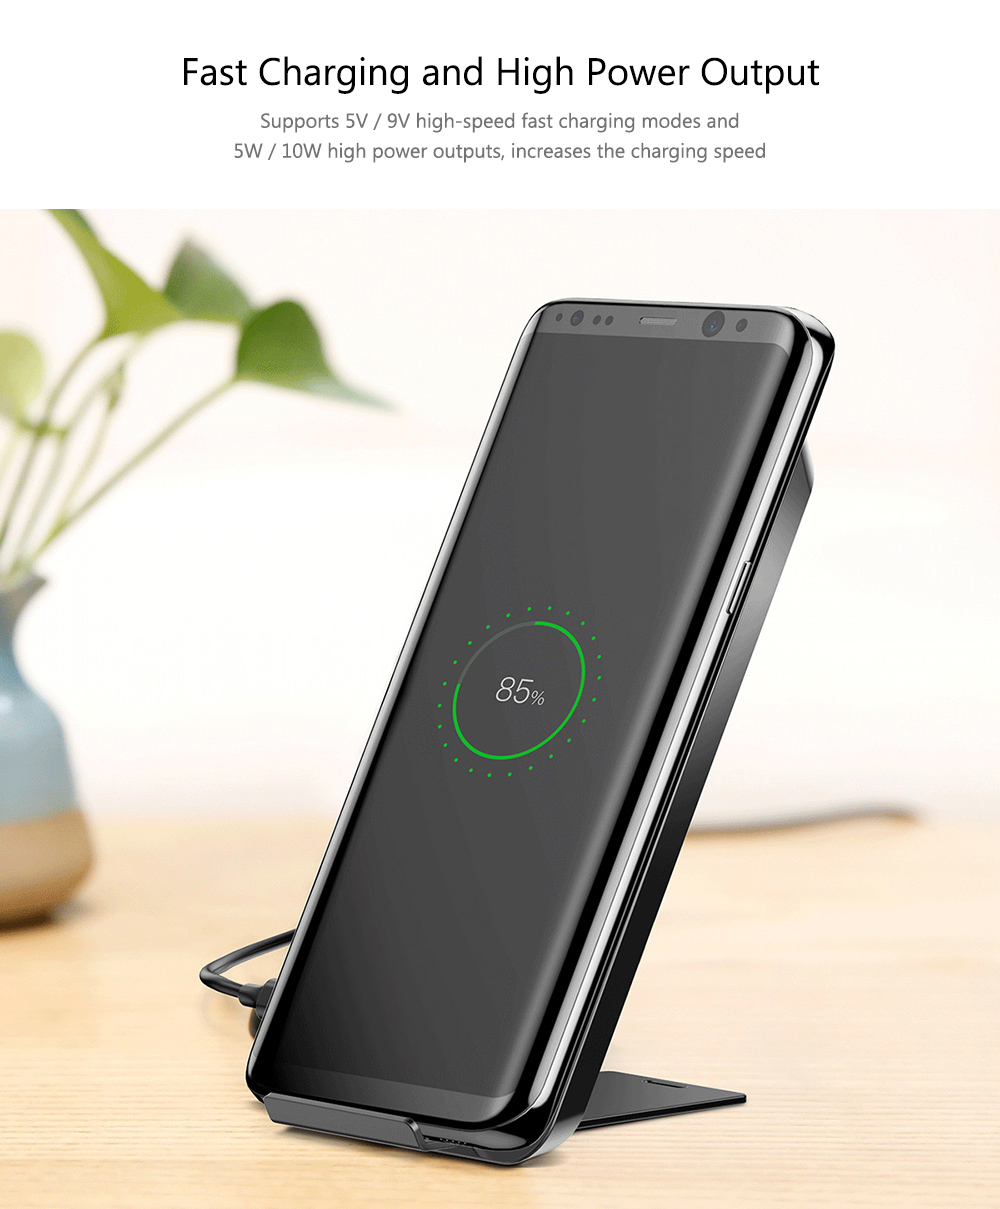 for iPhone X / Samsung Galaxy S8+ / S8 and Qi Enabled Devices- Black